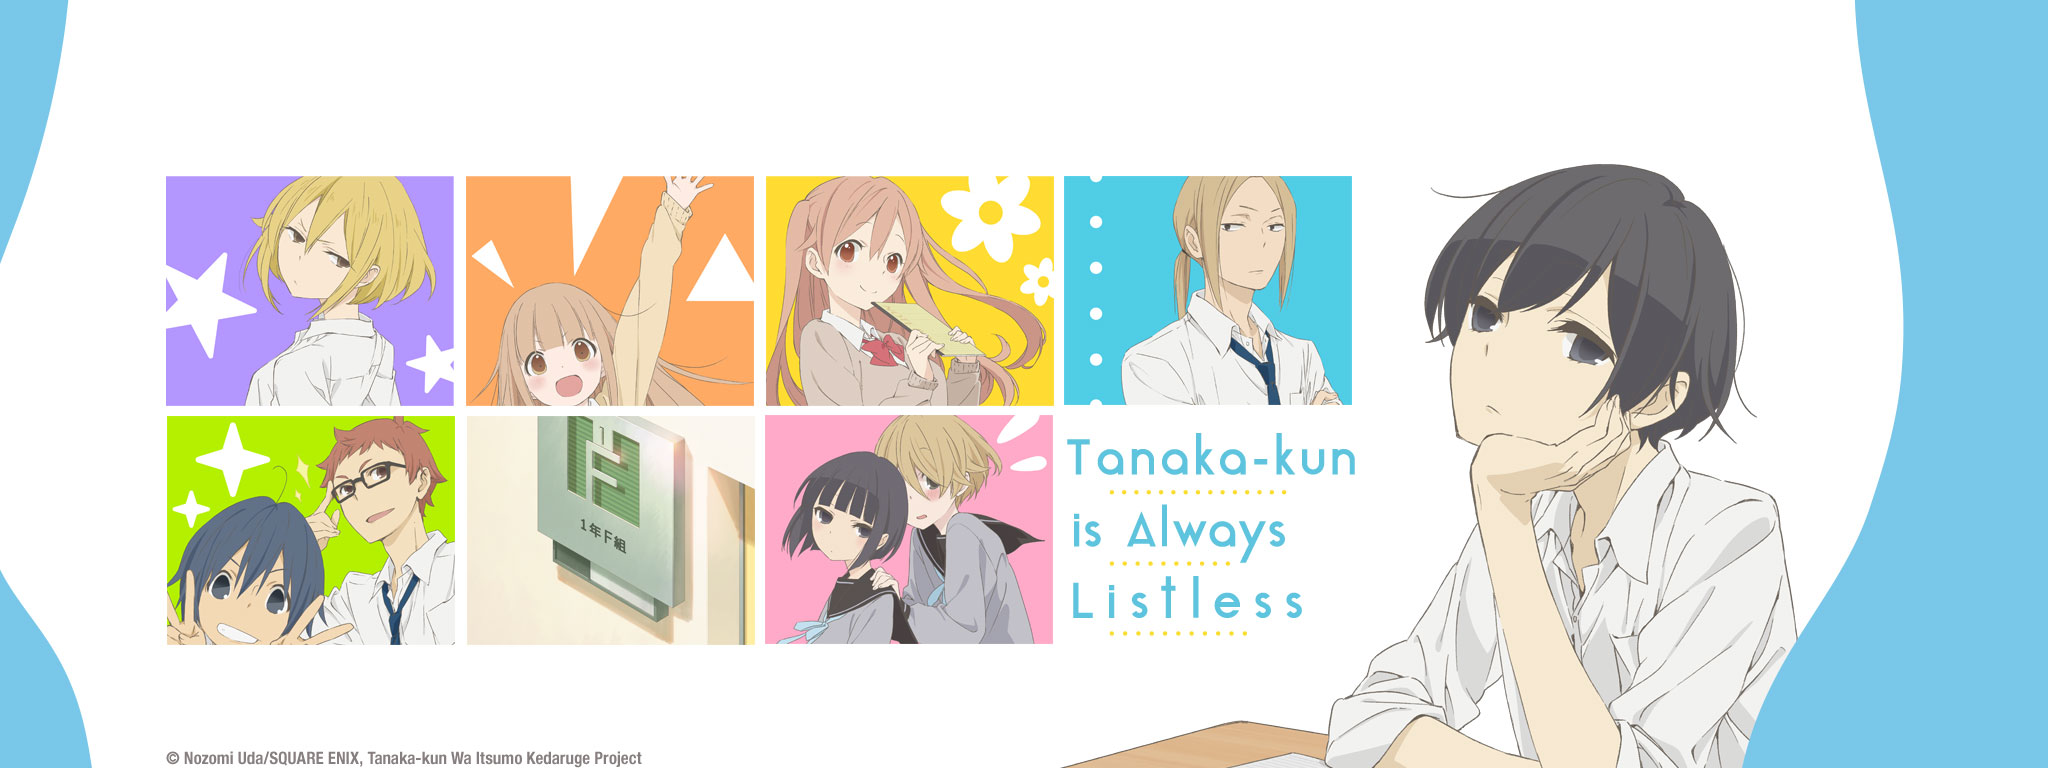 Tanaka-kun is Always Listless